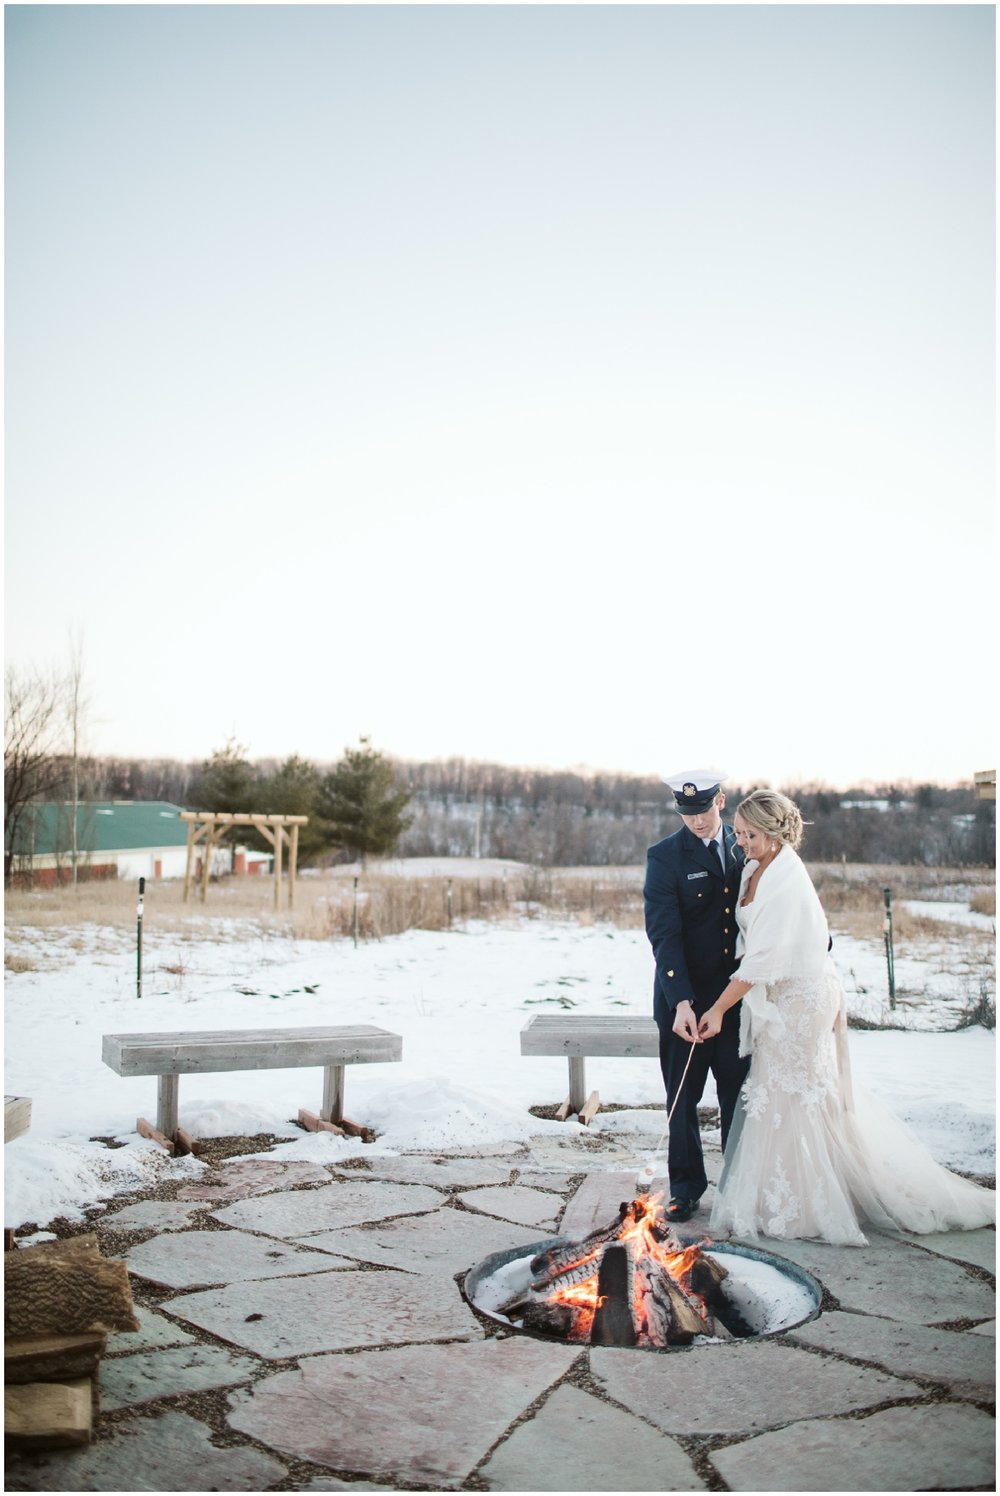 Outdoor Minnesota Wedding Venue - The Outpost Center_0148.jpg